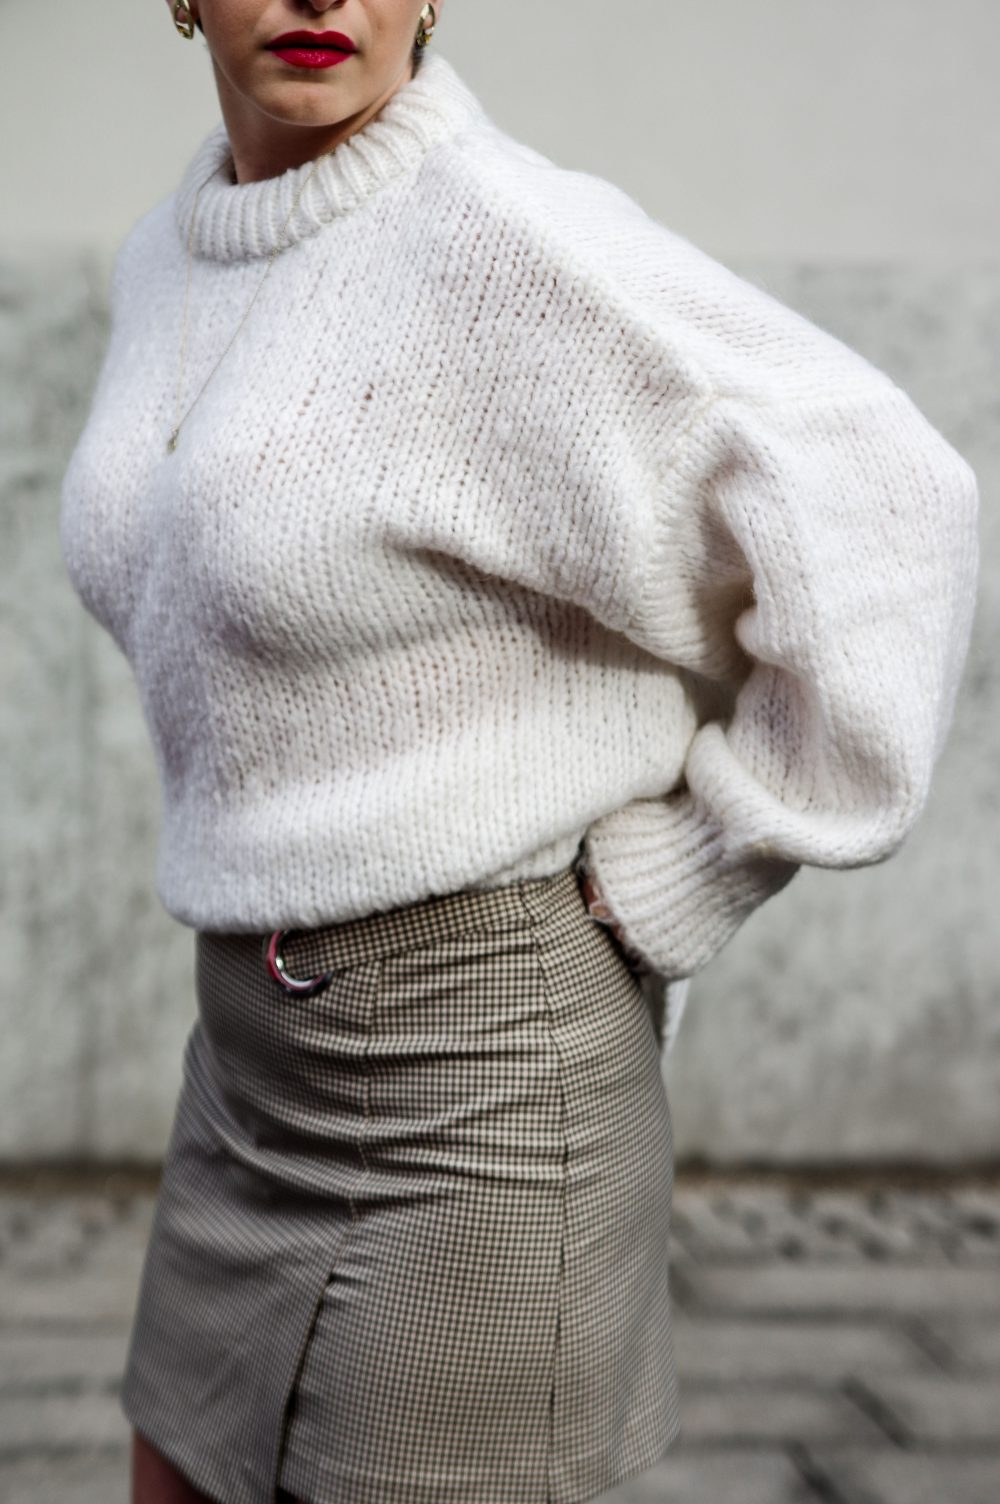 white zara sweater, sweater weather, wrap skirt, winter look, spring outfit1